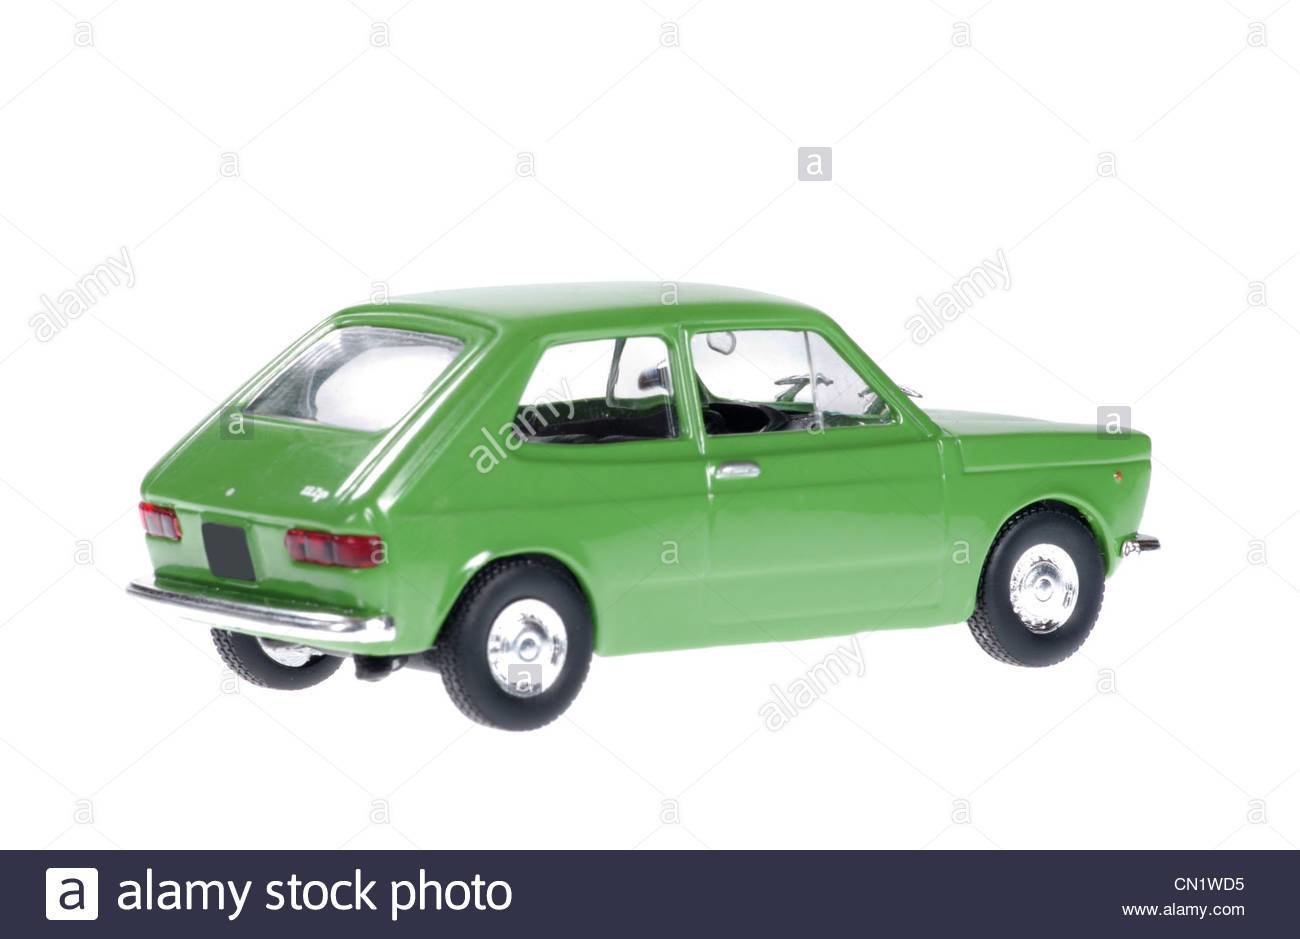 Latest Fiat 127 P Old Small Car Stock Photo 47370433 Alamy Free Download